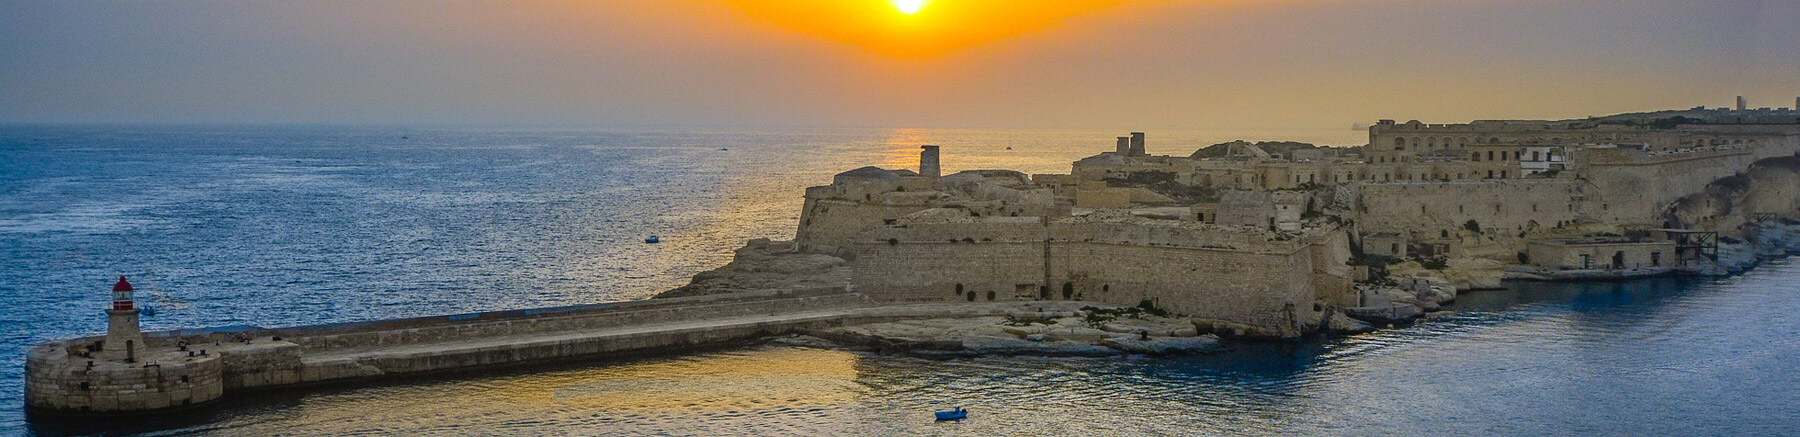 View of a fort in Malta at sunset